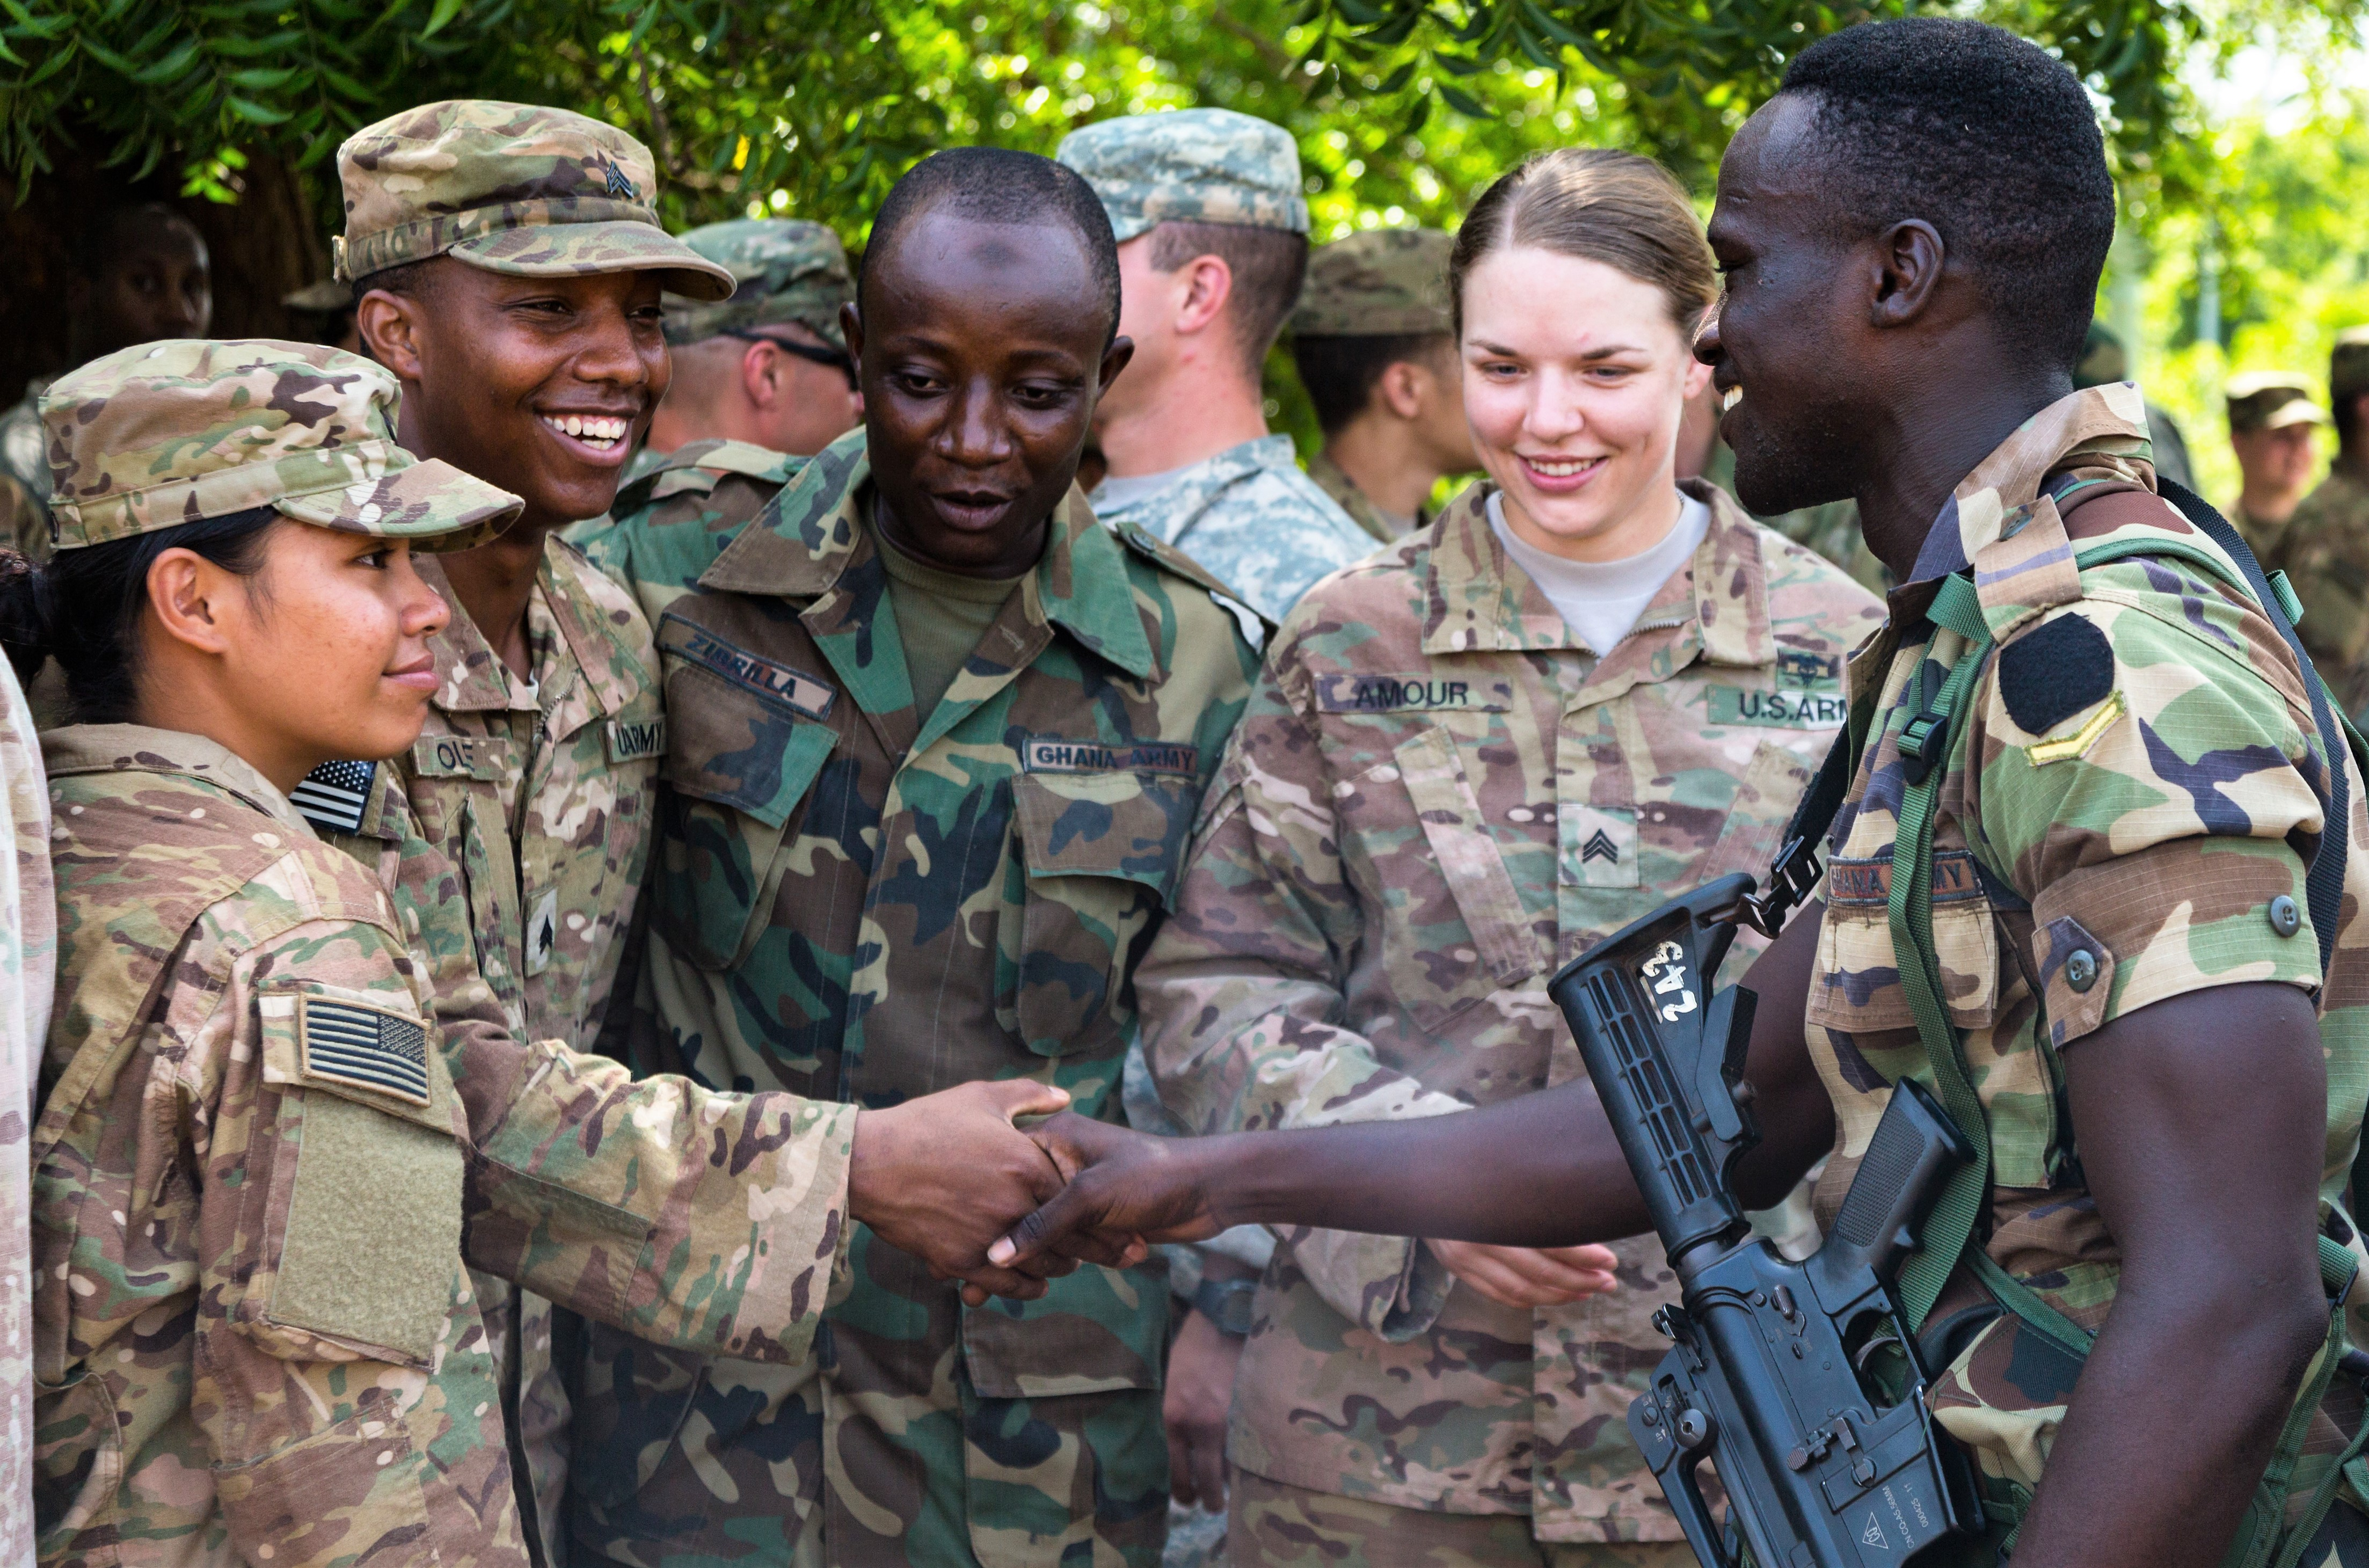 U.S. Soldiers assigned to the 1st Battalion, 506th Infantry Regiment, 1st Brigade Combat Team, 101st Airborne Division and Ghana Armed Forces soldiers participate in a farewell event during United Accord 2017 at Bundase Training Camp, Bundase, Ghana, May 29, 2017. United Accord (formerly Western Accord) 2017 is an annual, combined, joint military exercise that promotes regional relationships, increases capacity, trains U.S. and Western African forces, and encourages cross training and interoperability. (U.S. Army photo by Spc. Victor Perez Vargas/Released)